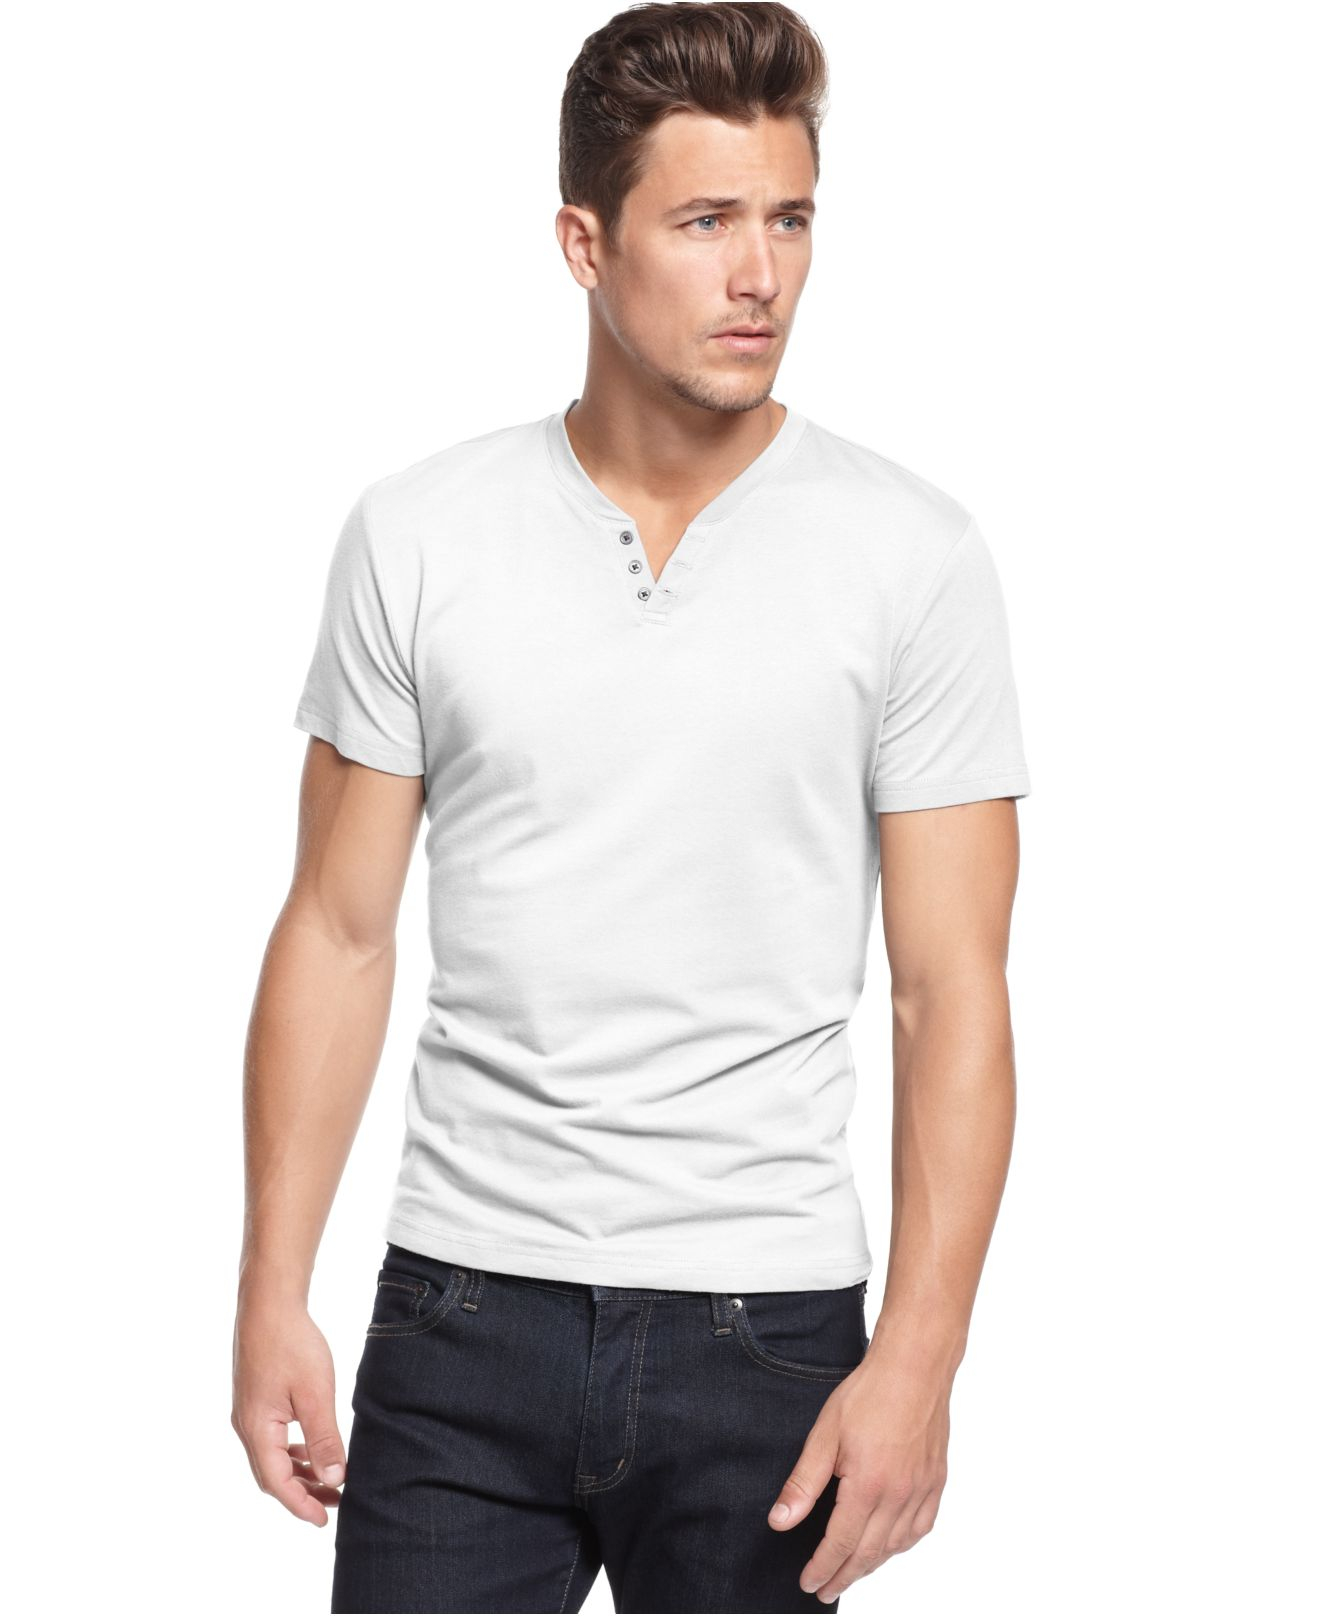 Shop a great selection of Dress Shirts at Nordstrom Rack. Find designer Dress Shirts up to 70% off and get free shipping on orders over $